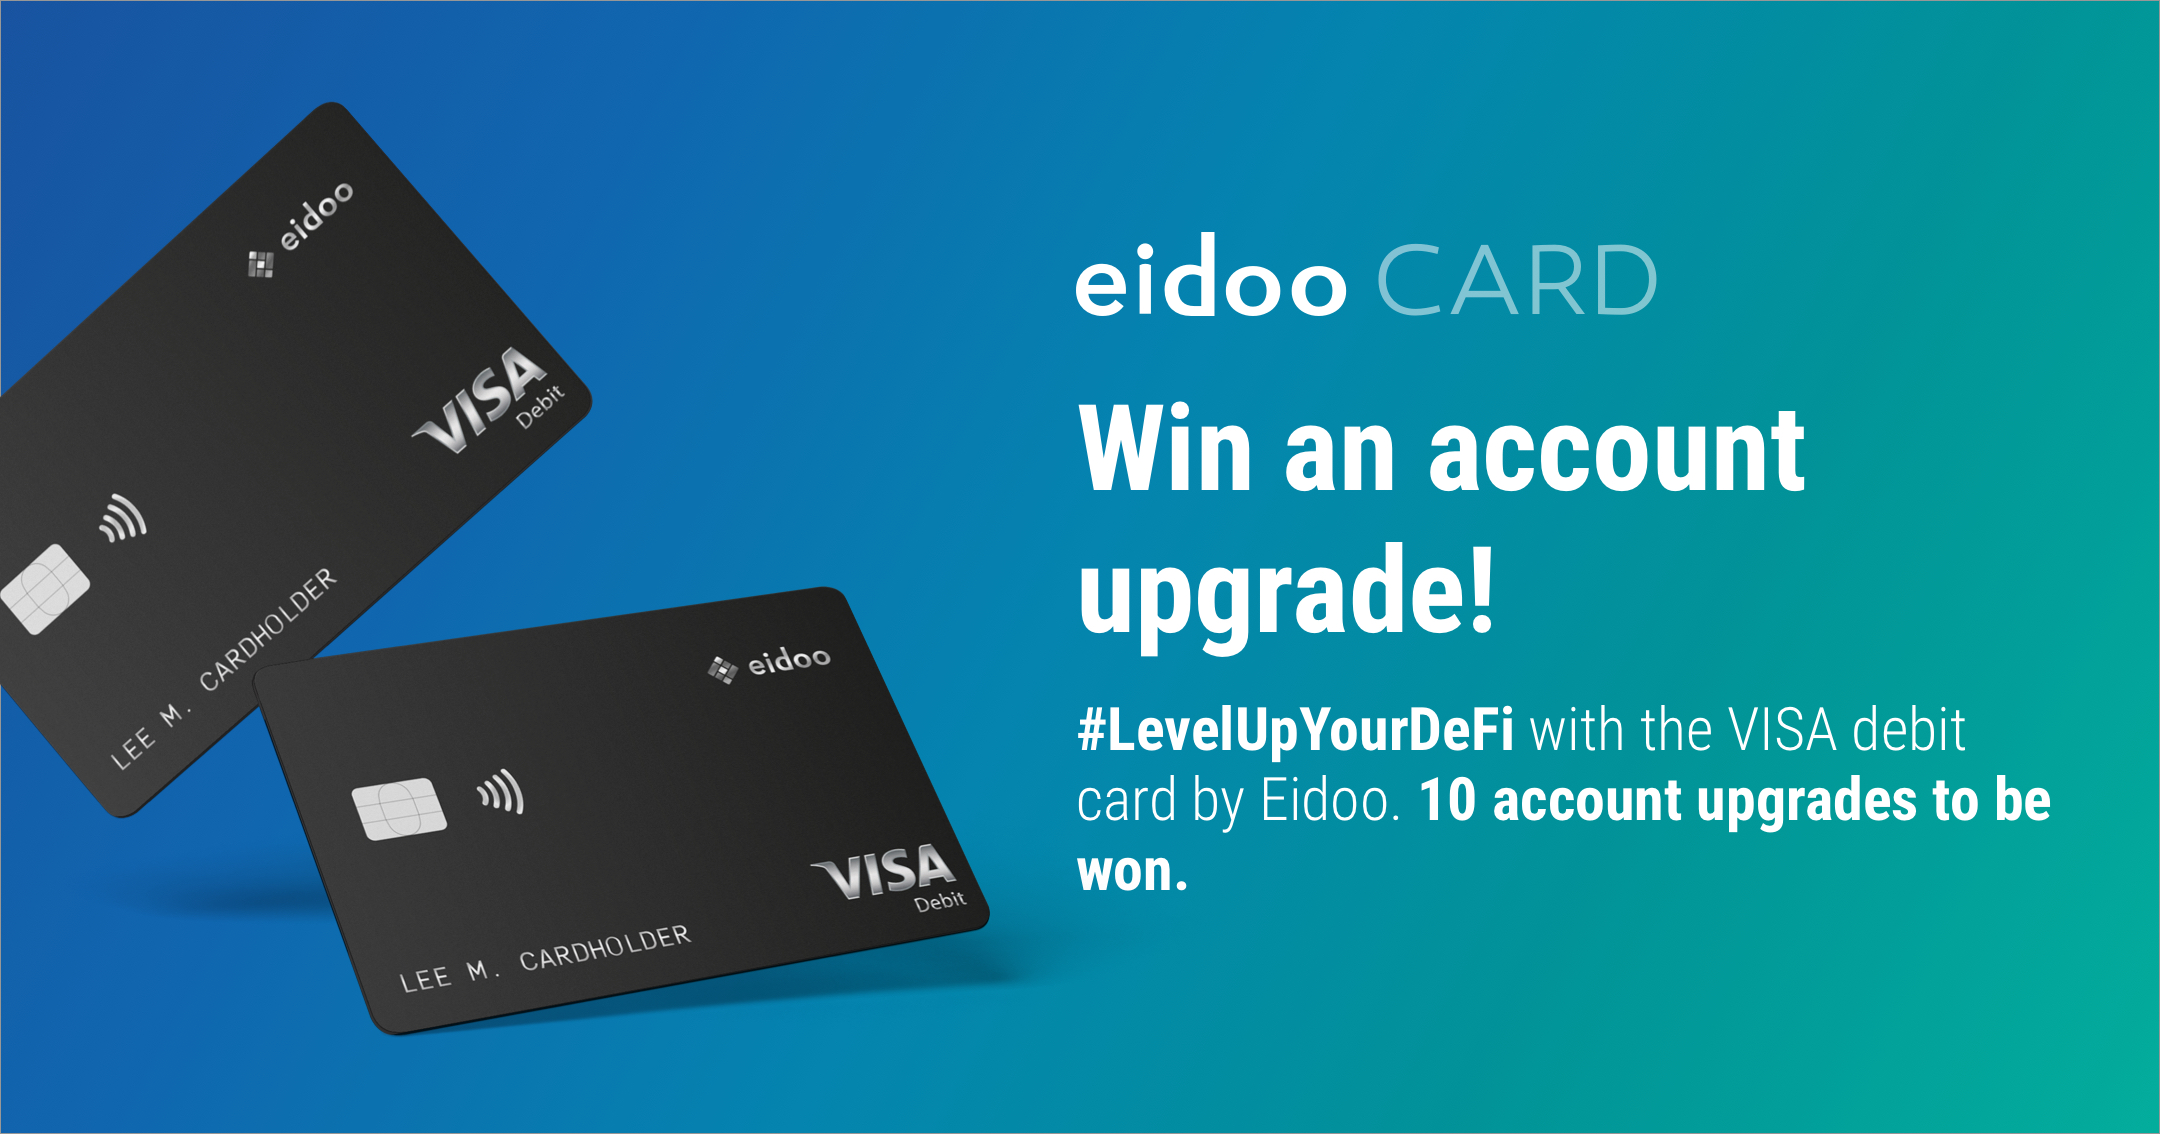 #LevelUpYourDeFi with the VISA debit card by Eidoo